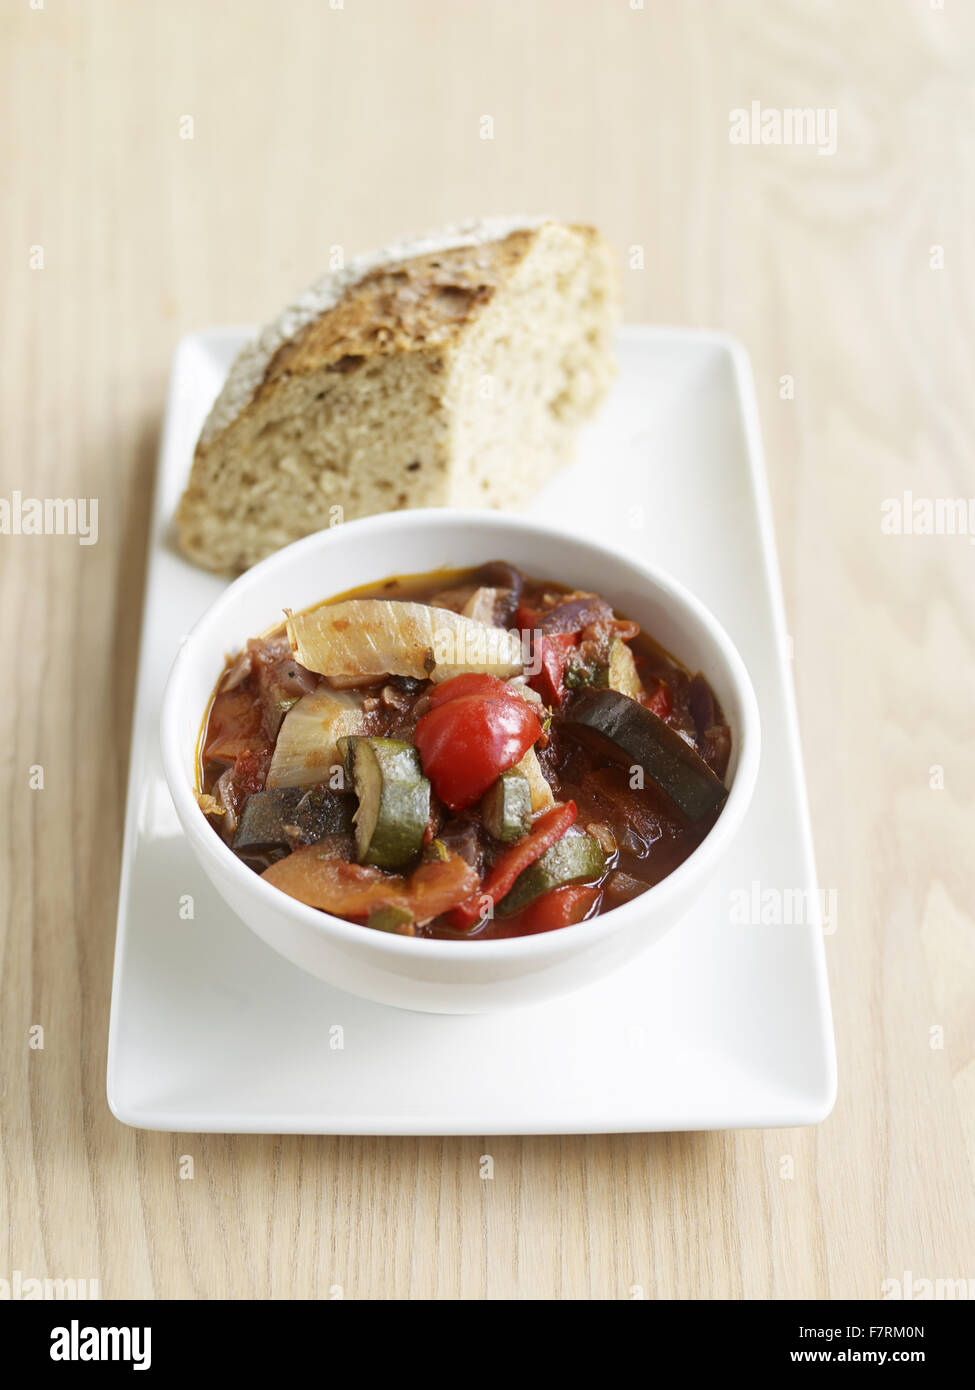 Ratatouille photographed for the 2015 National Trust Summer Cookbook. - Stock Image